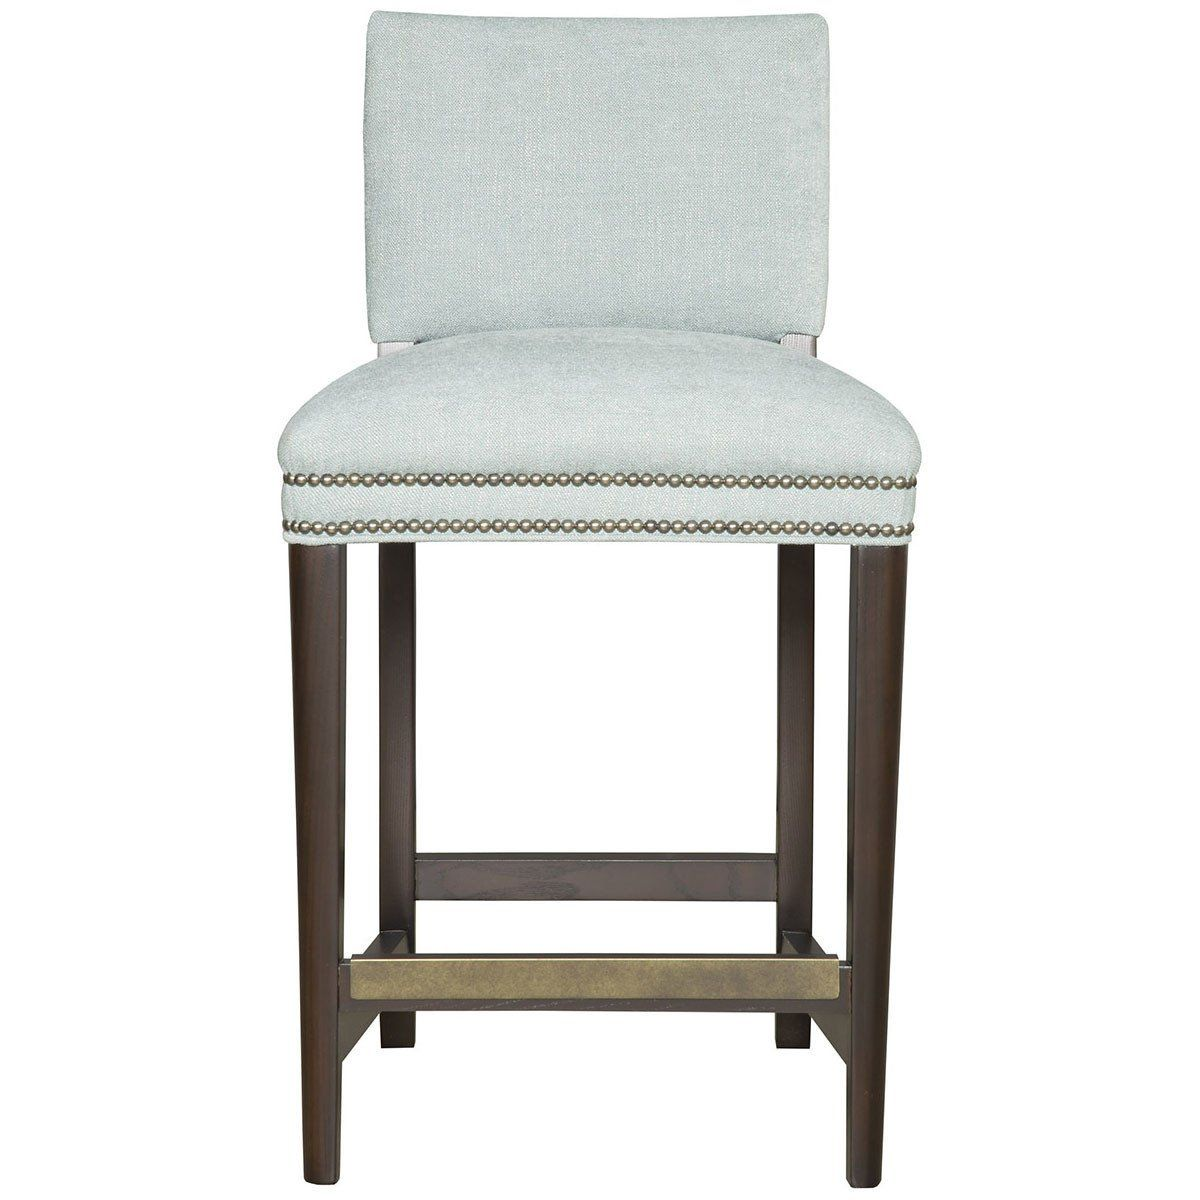 Magnificent Vanguard Furniture Newton Counter Stool Products Counter Machost Co Dining Chair Design Ideas Machostcouk